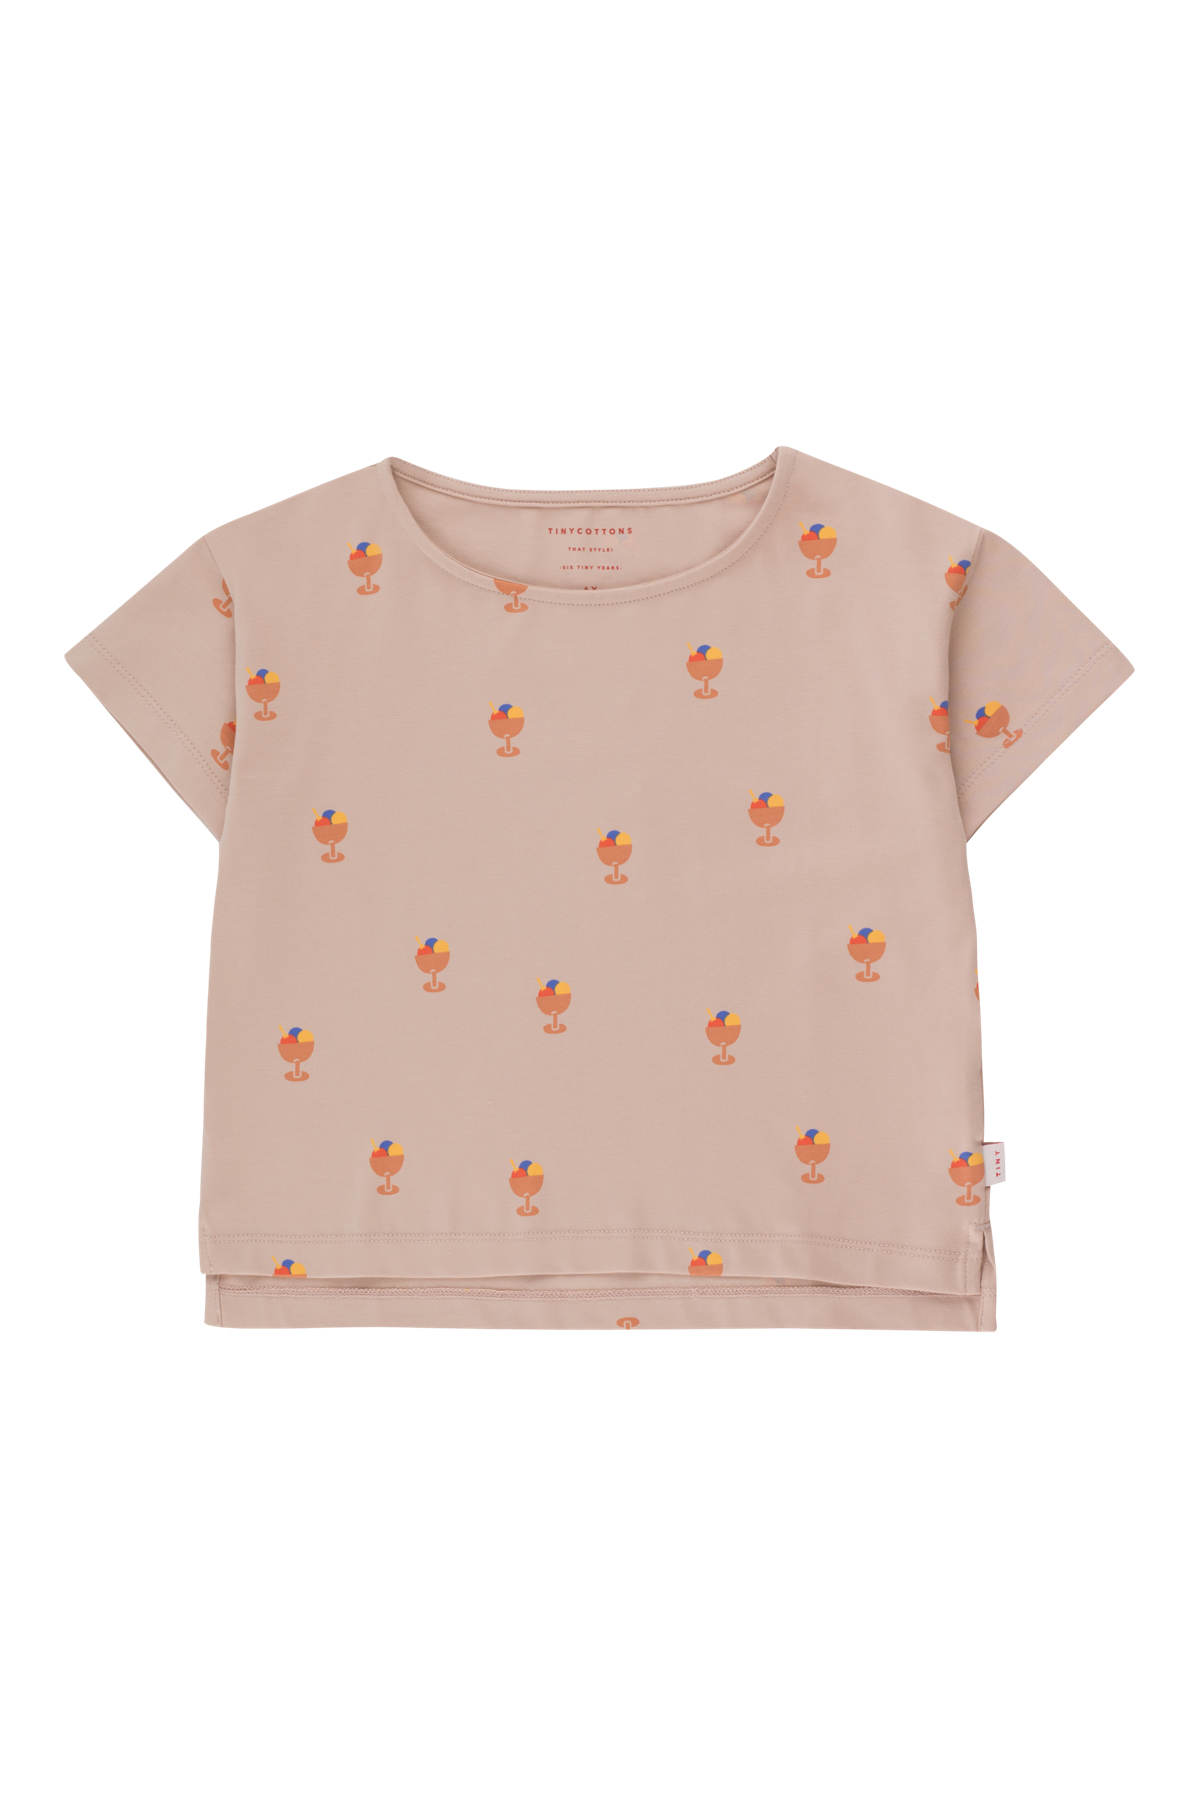 tinycottons ice cream cup crop tee dusty pink papaya